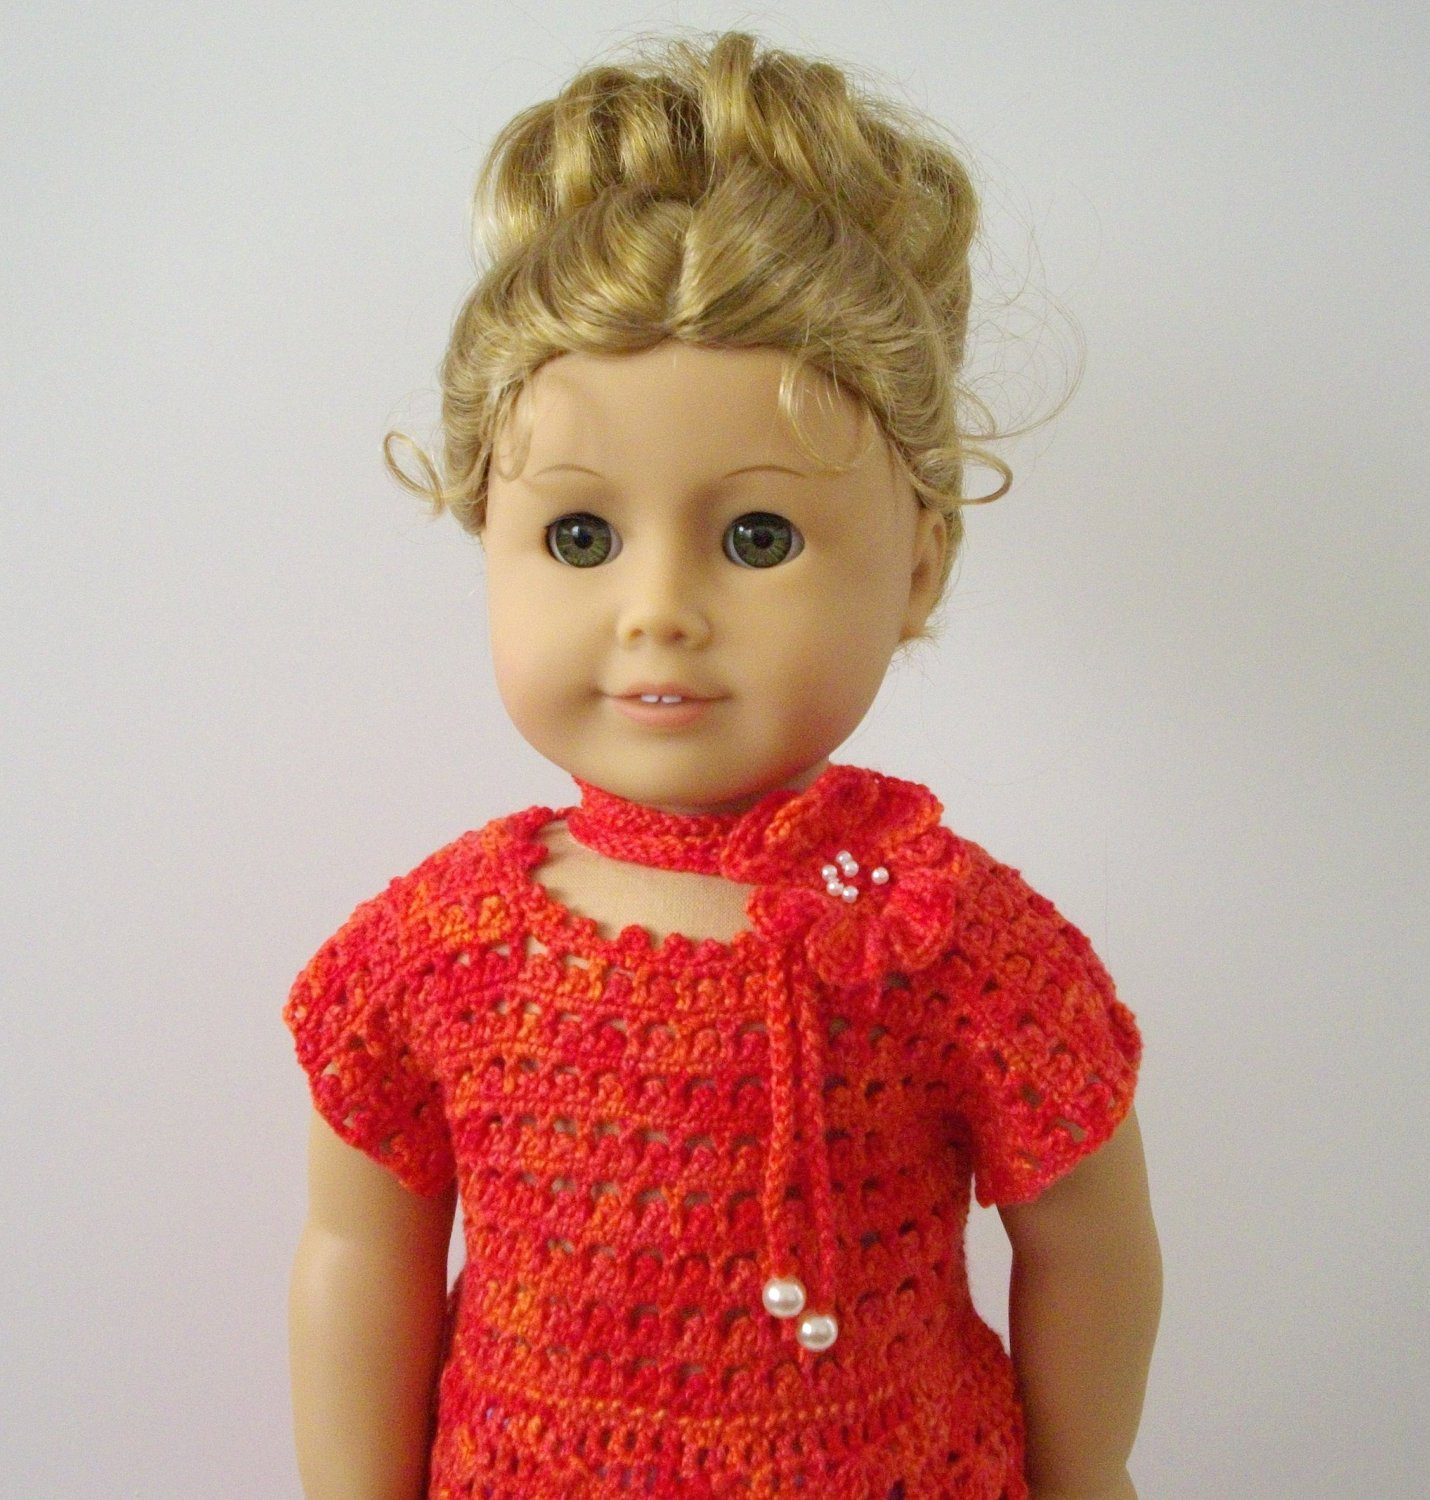 Lovely Free American Doll Pattern Crochet Crochet and Knitting Free American Girl Doll Patterns Of Top 44 Pics Free American Girl Doll Patterns